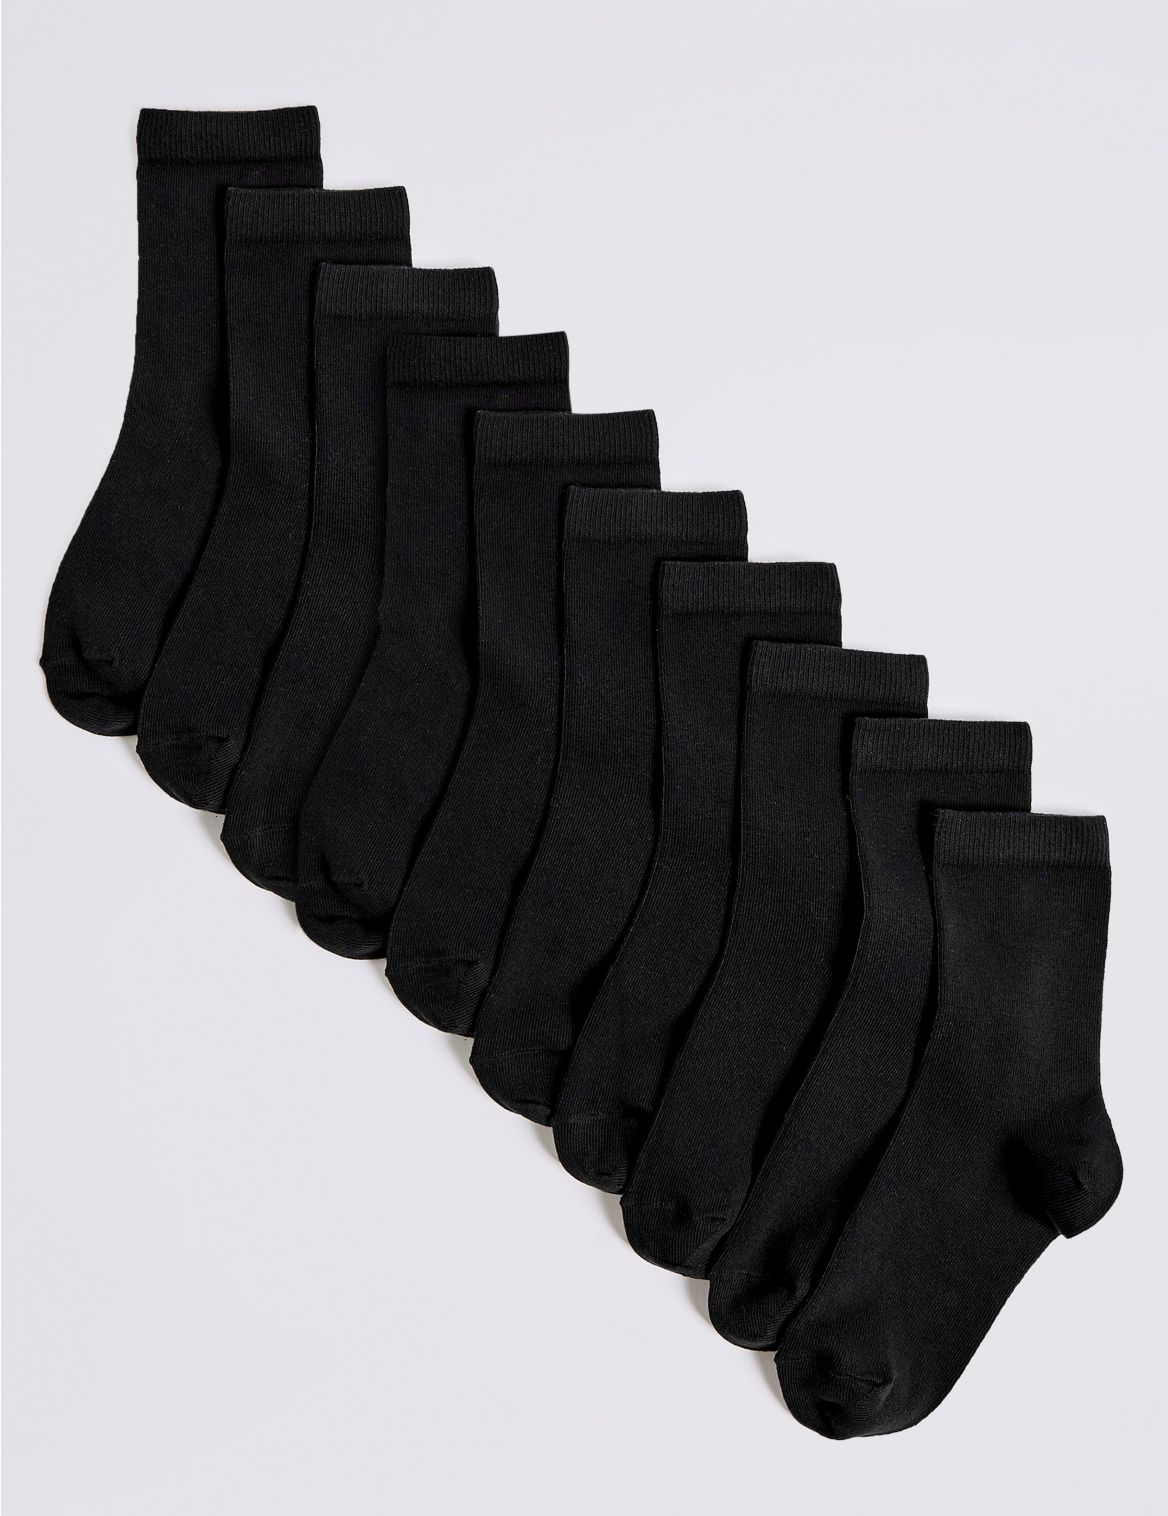 10 Pairs of Ankle School Socks black